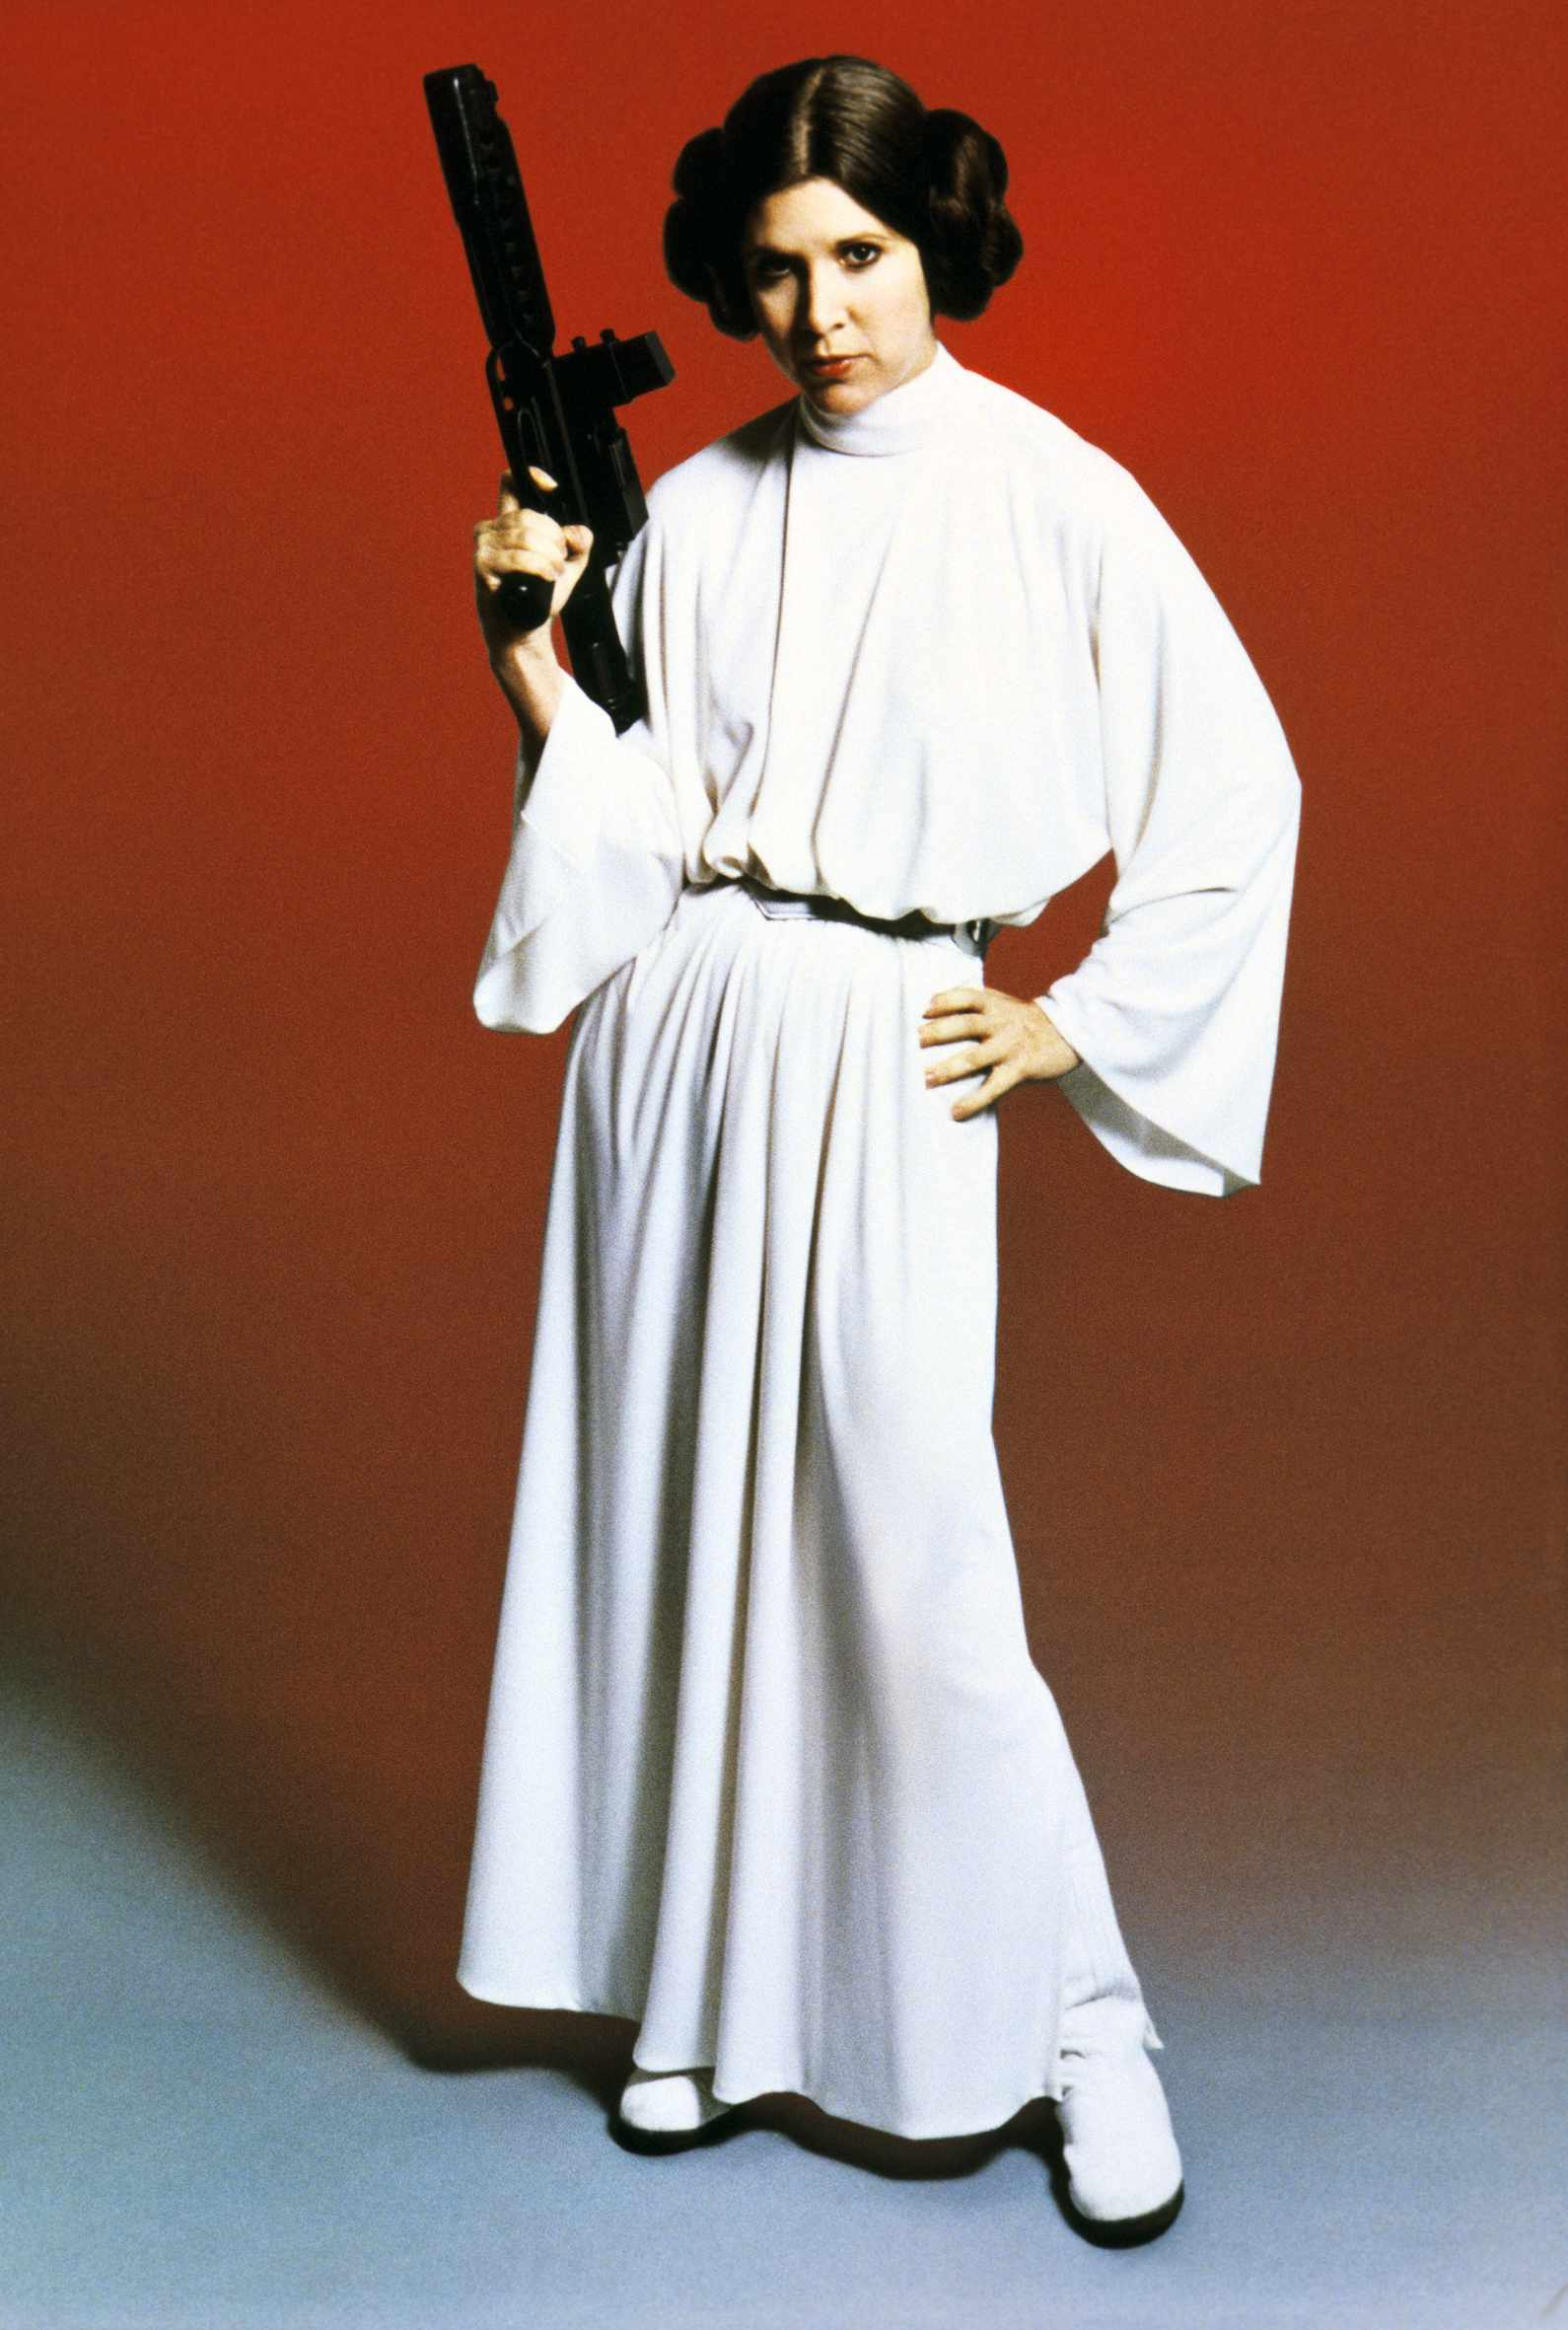 Carrie Fisher in Star Wars Episode IV: A New Hope (Sky, EH)